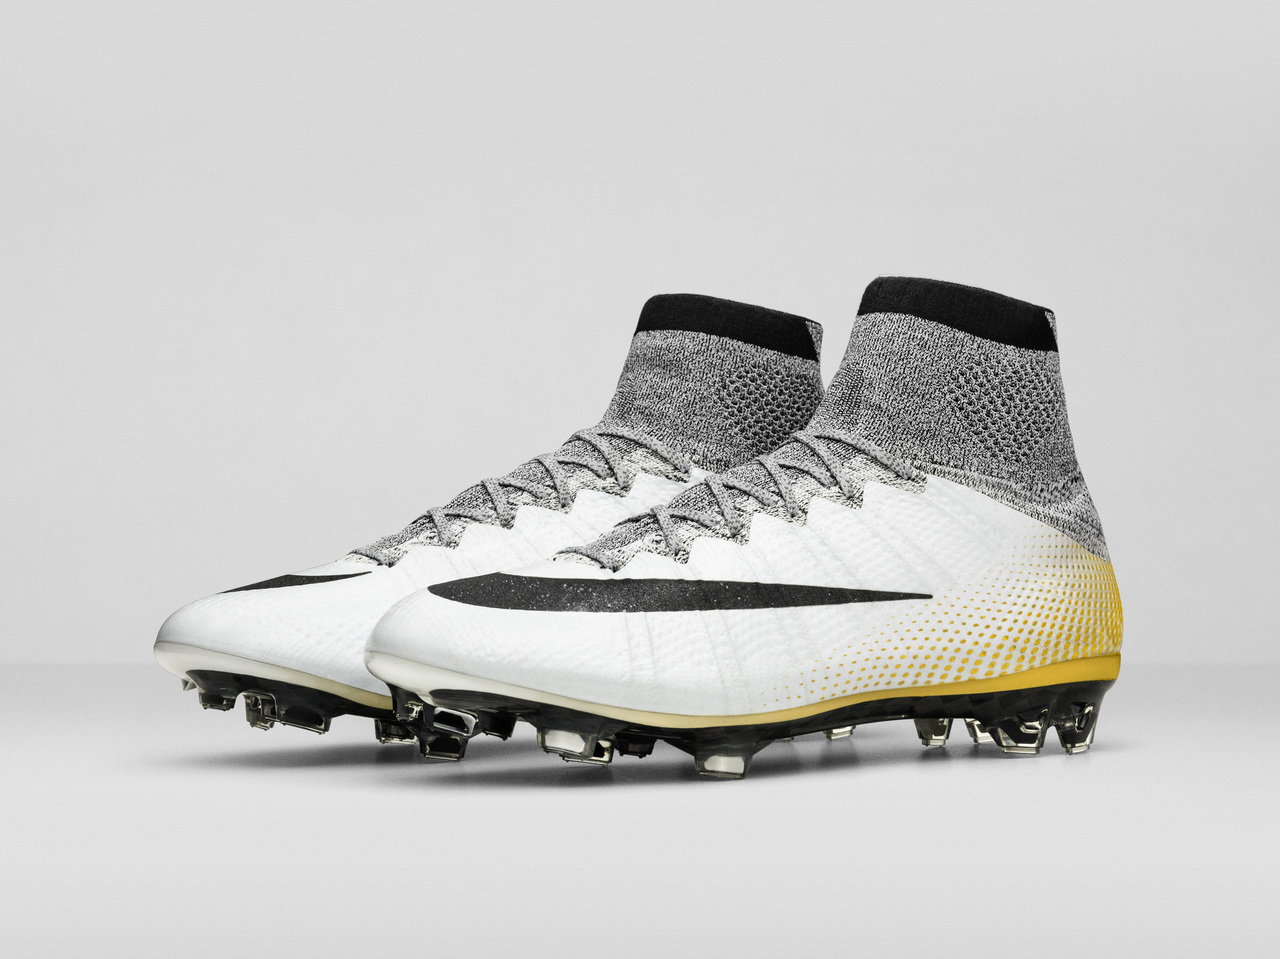 release date 2f2d3 2d4a0 Nike Mercurial Superfly CR7 324K Gold Football Boots ...